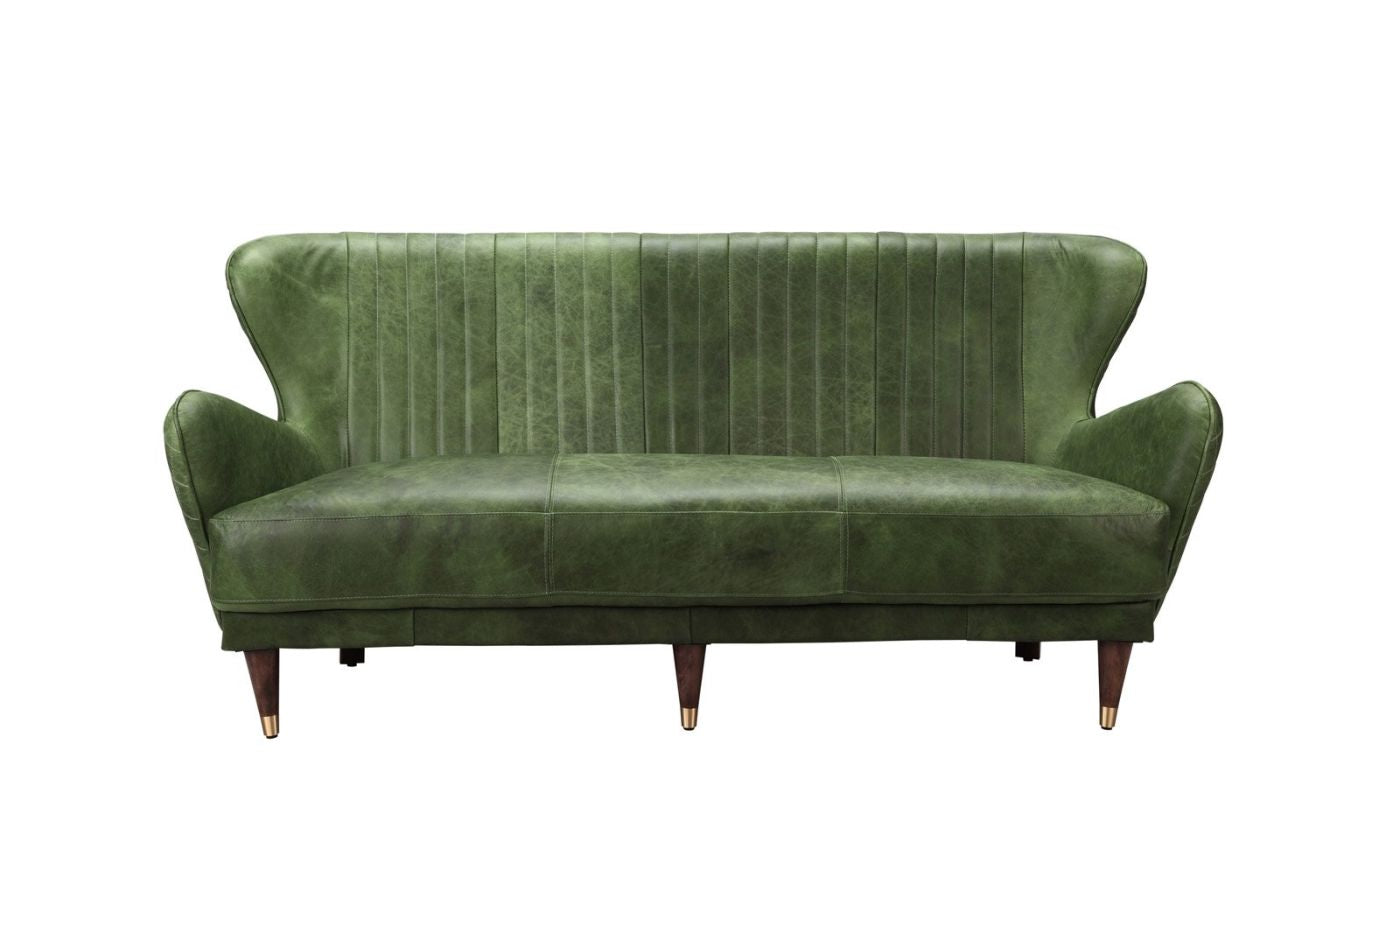 Best price on Moe\'s Home Collection PK-1080-27 Keaton Leather Sofa Emerald.  Only $3,024.00 at Contemporary Furniture Warehouse.